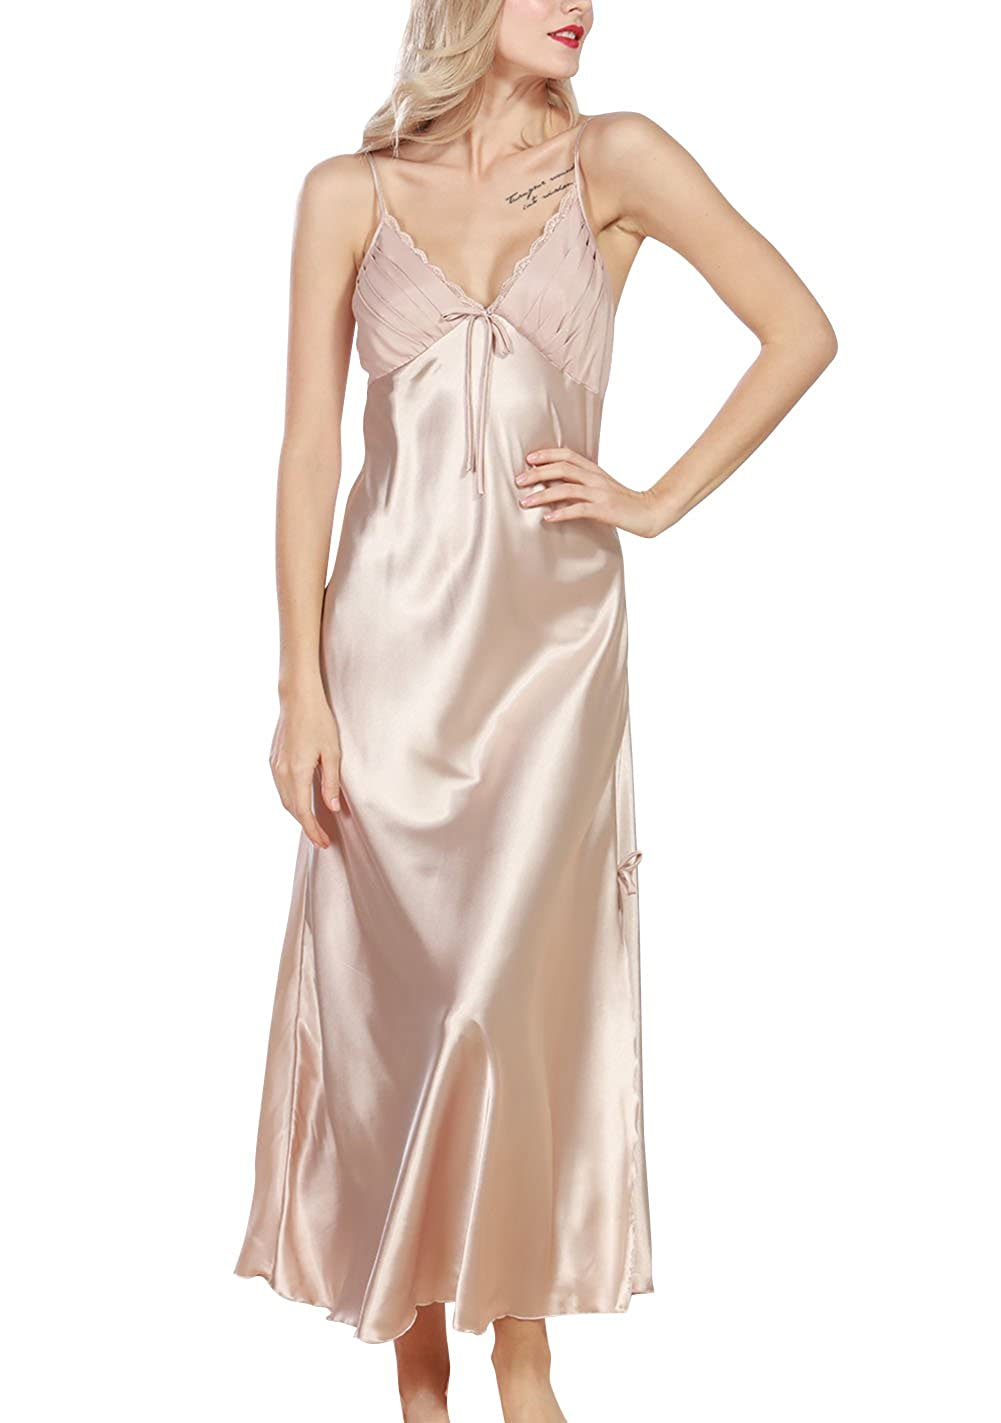 05af2c3f7 Durable 100% polyester satin that is easy on the skin and long lasting.  Soft